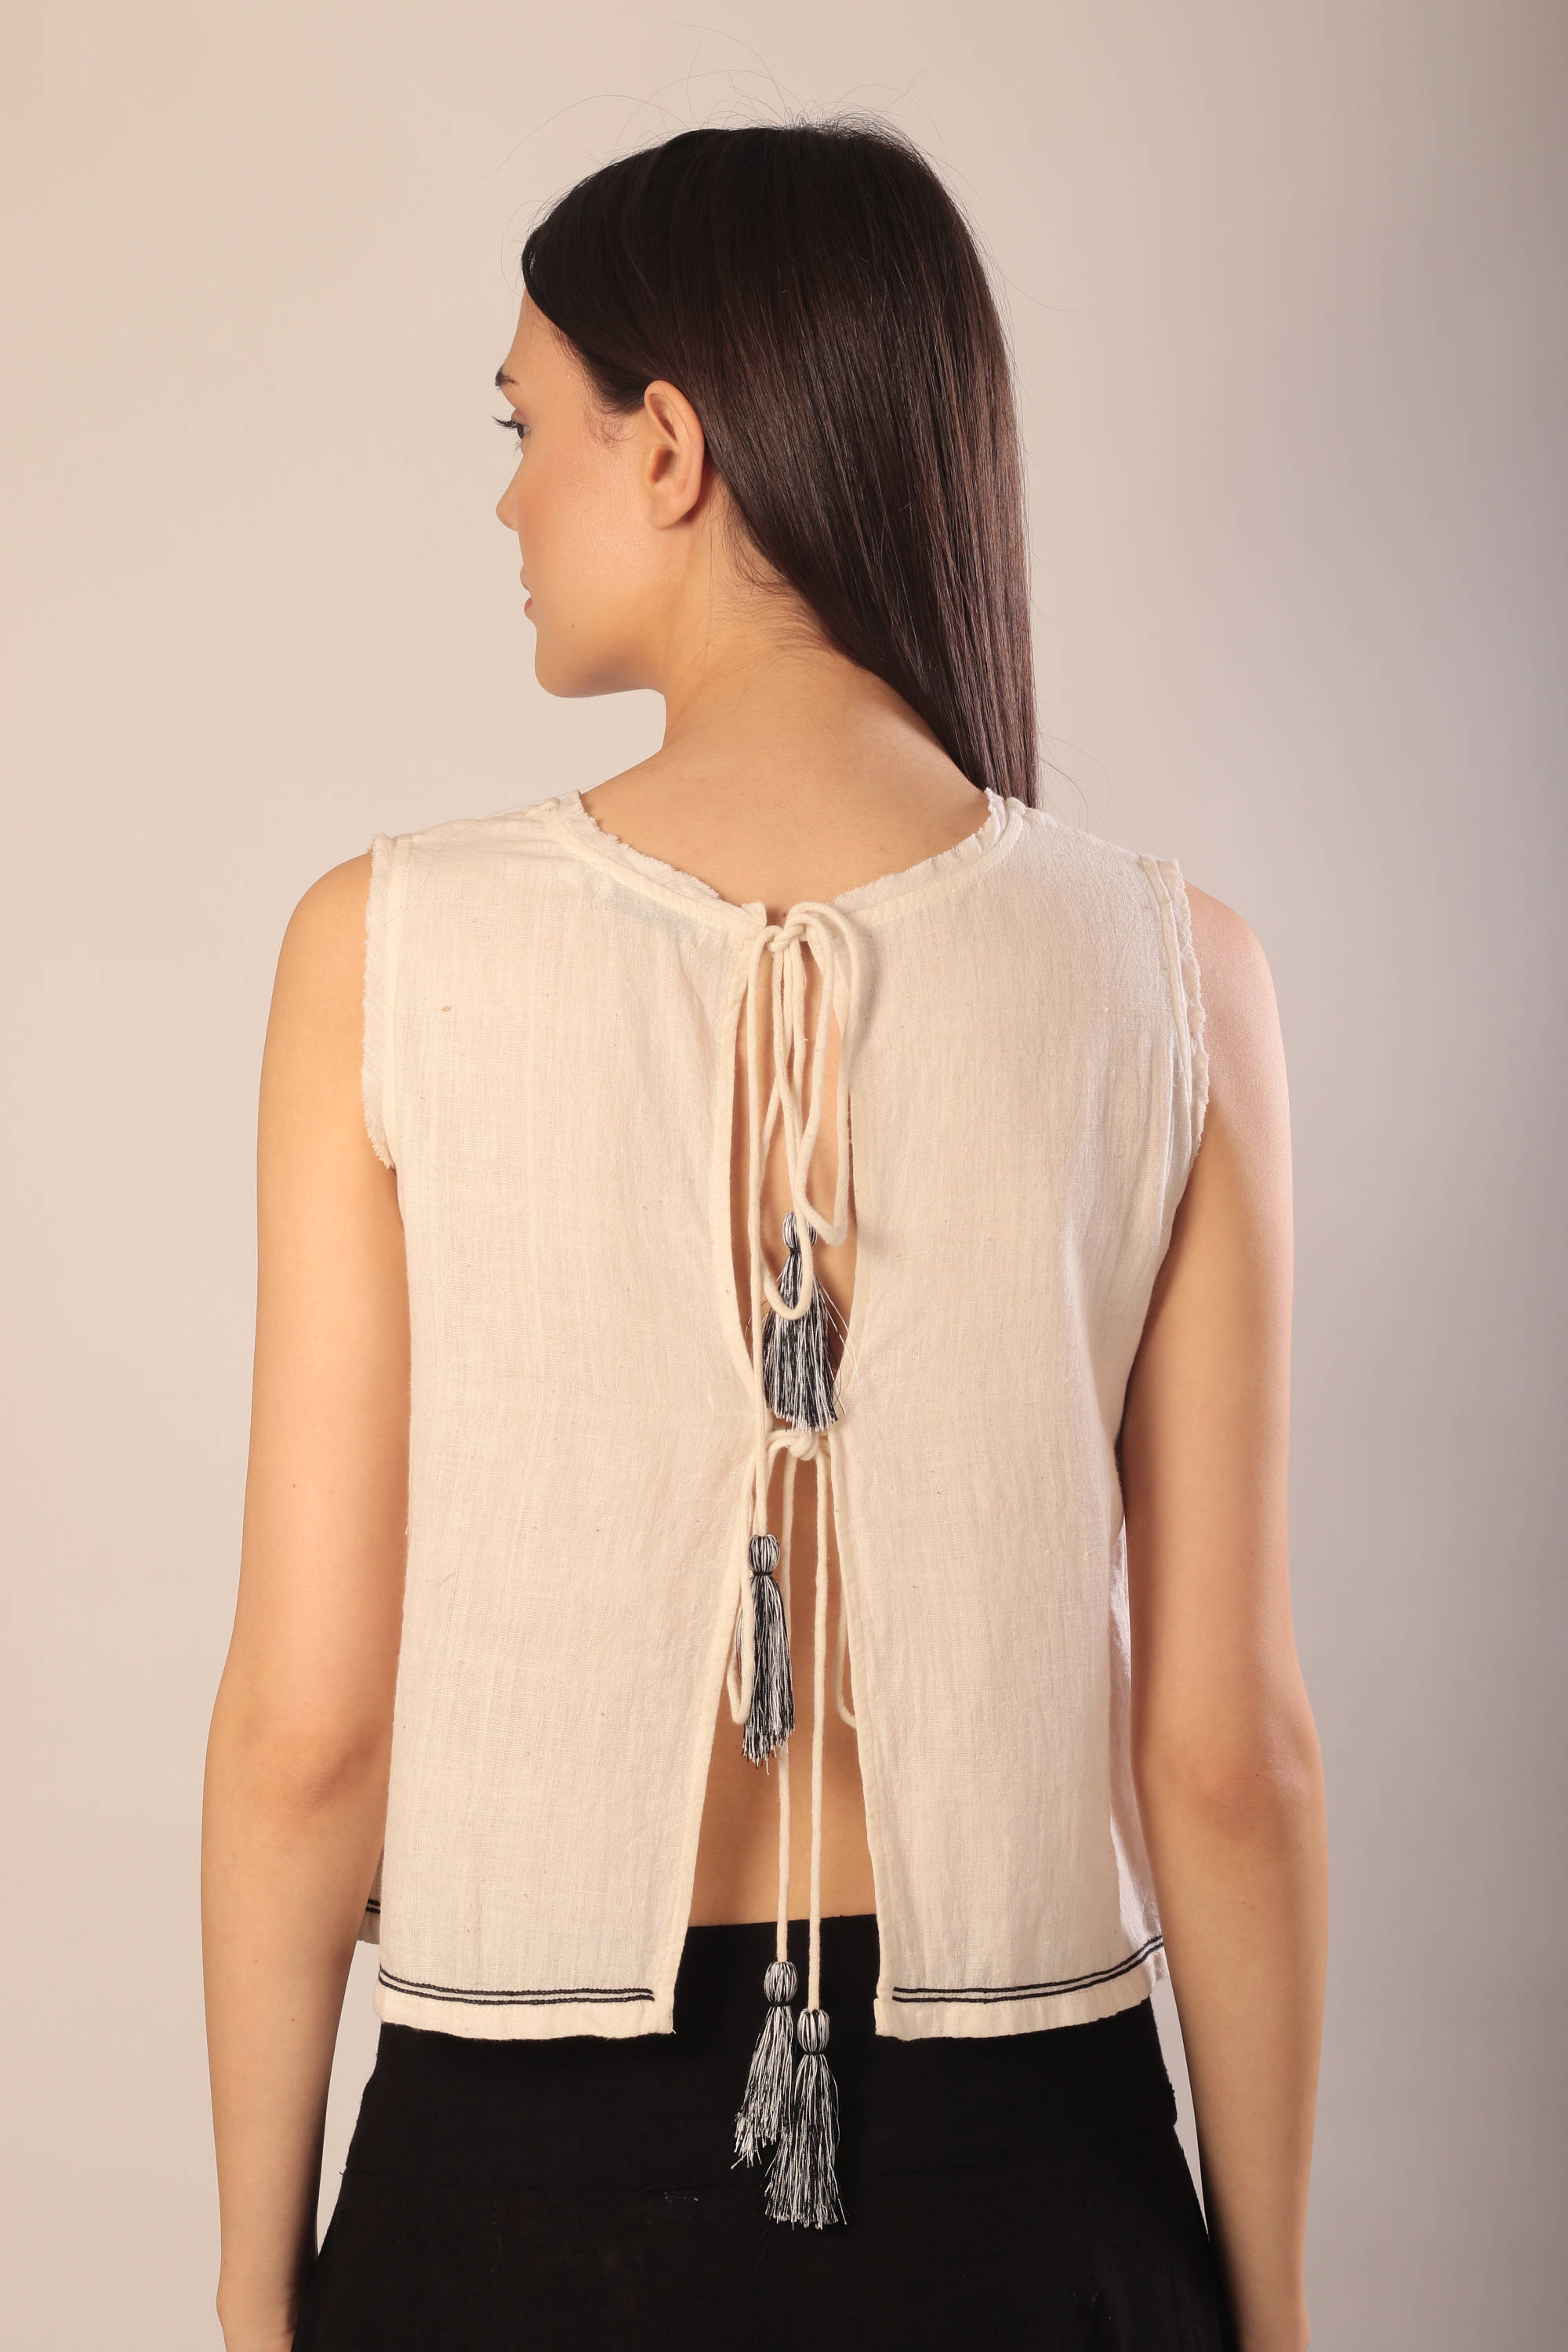 back view of a woman in a sleeveless ivory khaki tank top with tasseled tie ups and black khadi pants